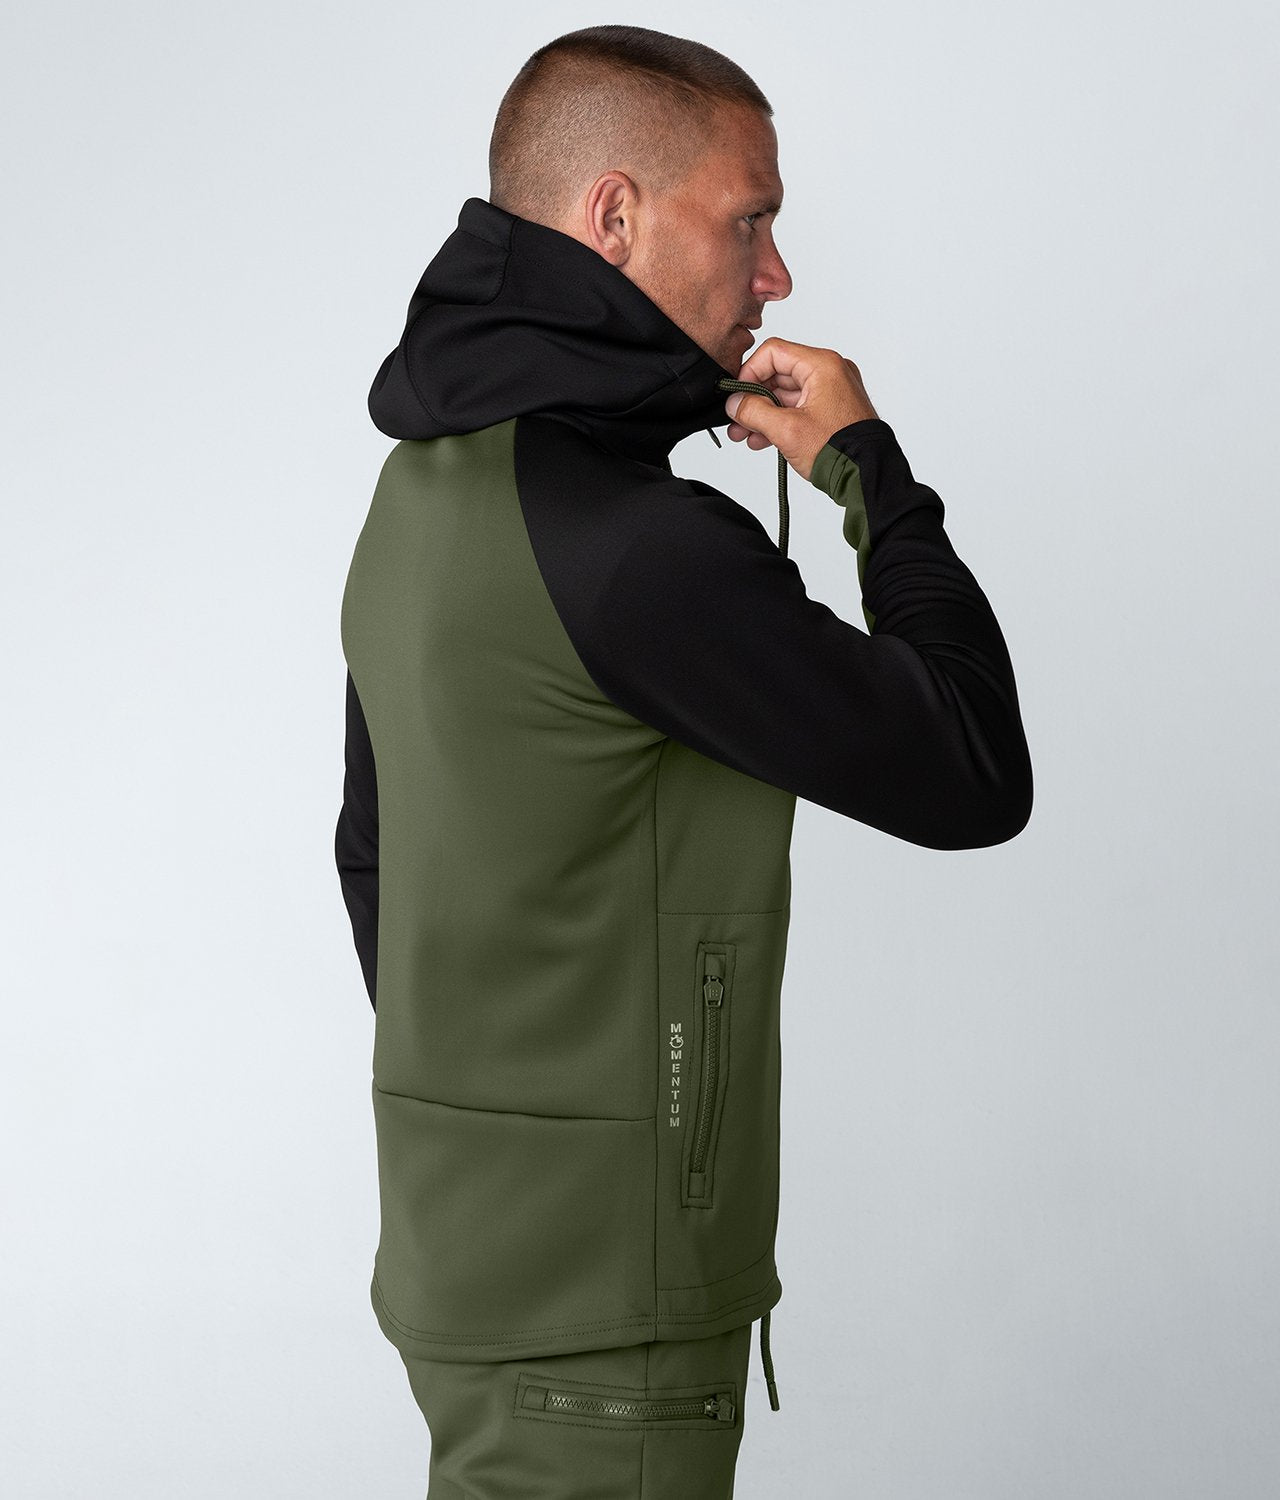 Born Tough Momentum High-Quality Zipper Drawstrings Green/Black Gym Workout Hoodie for Men